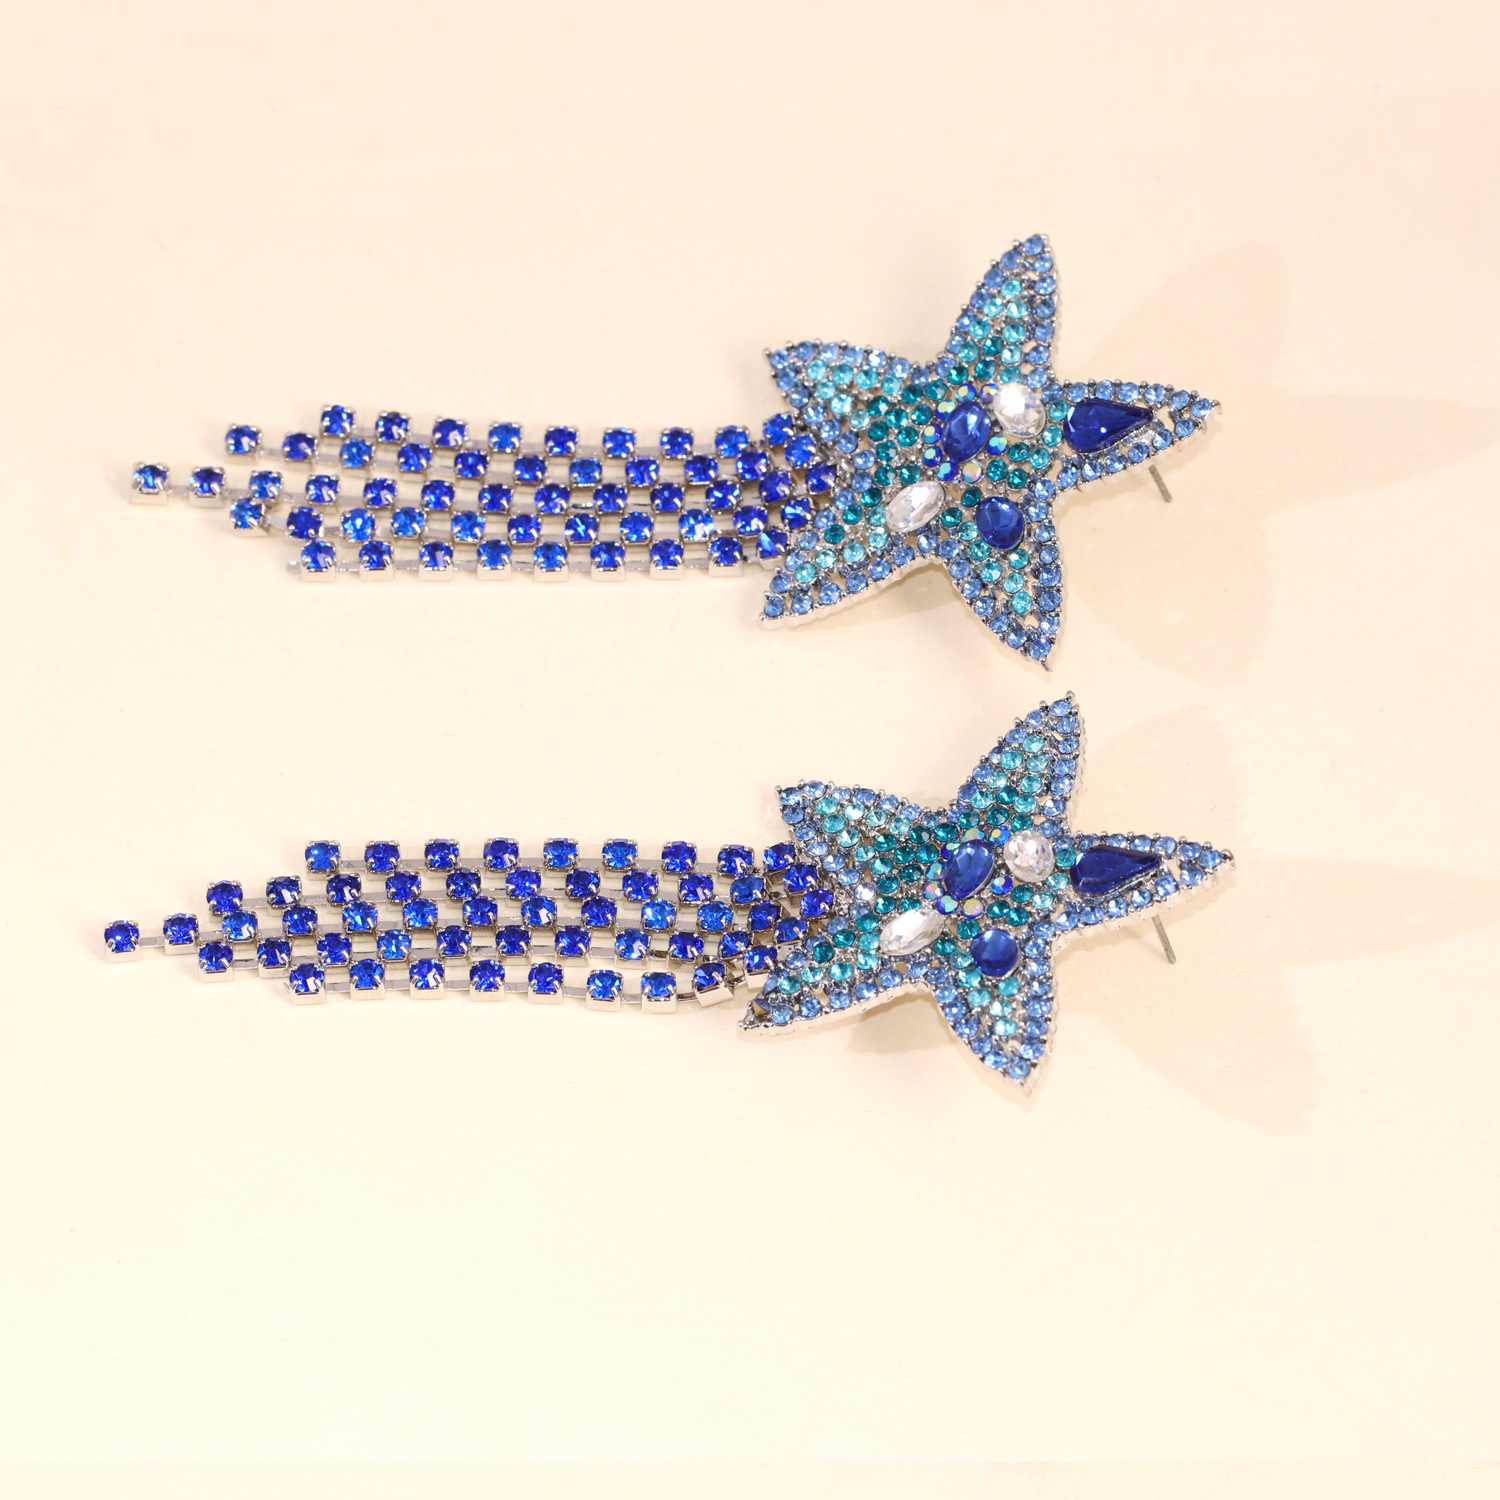 hot sale fashion new starfish star tassel earrings jewelry wholesale nihaojewelry NHJJ231858